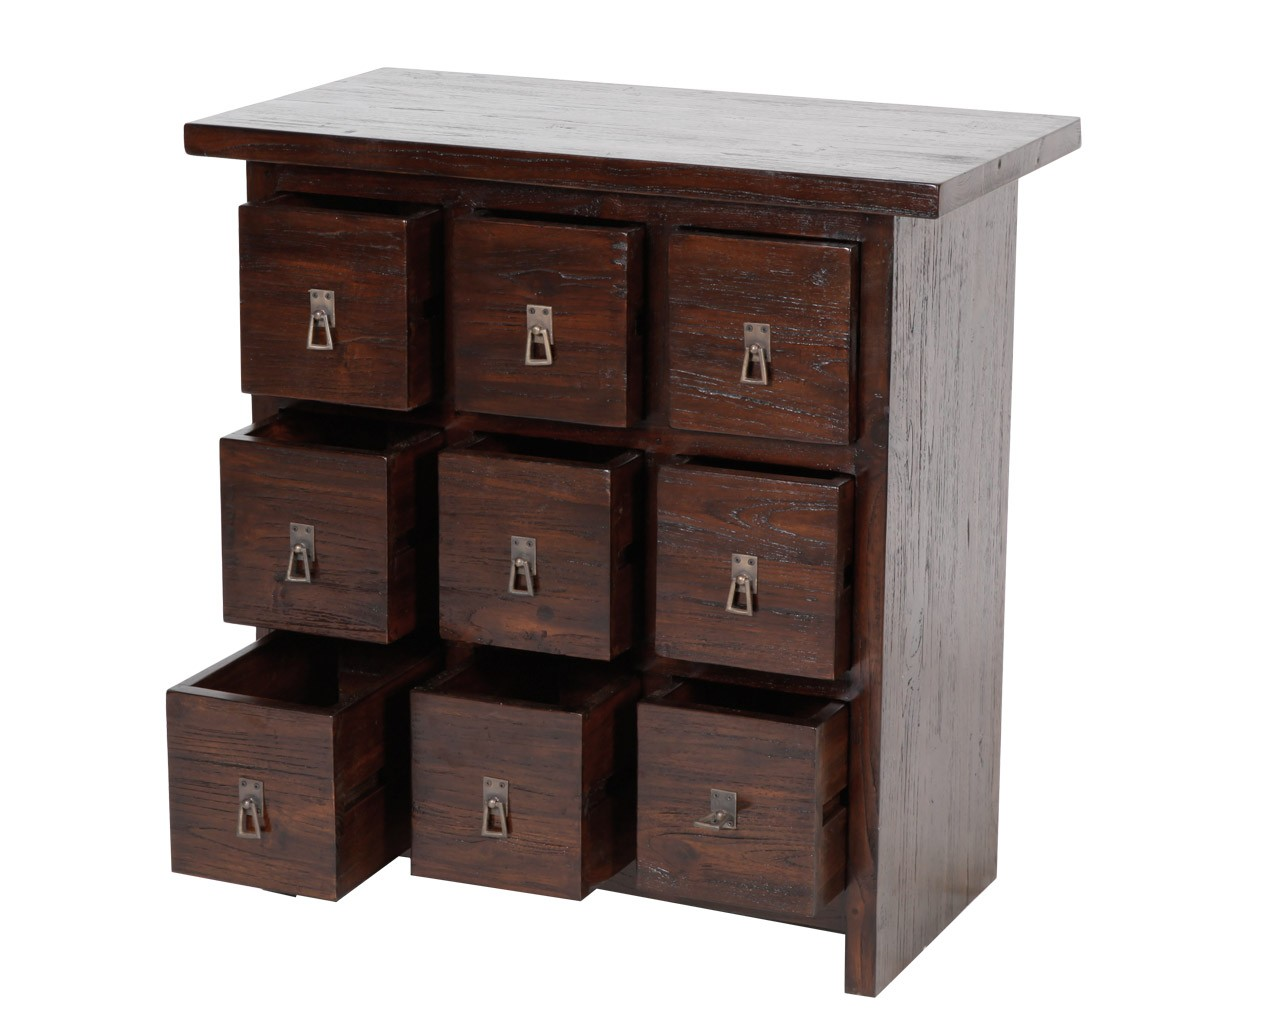 and amazon essentials storage finish drawers unit bins removable kitchen dining pnooxl tower drawer com brown bronze household shelves dp